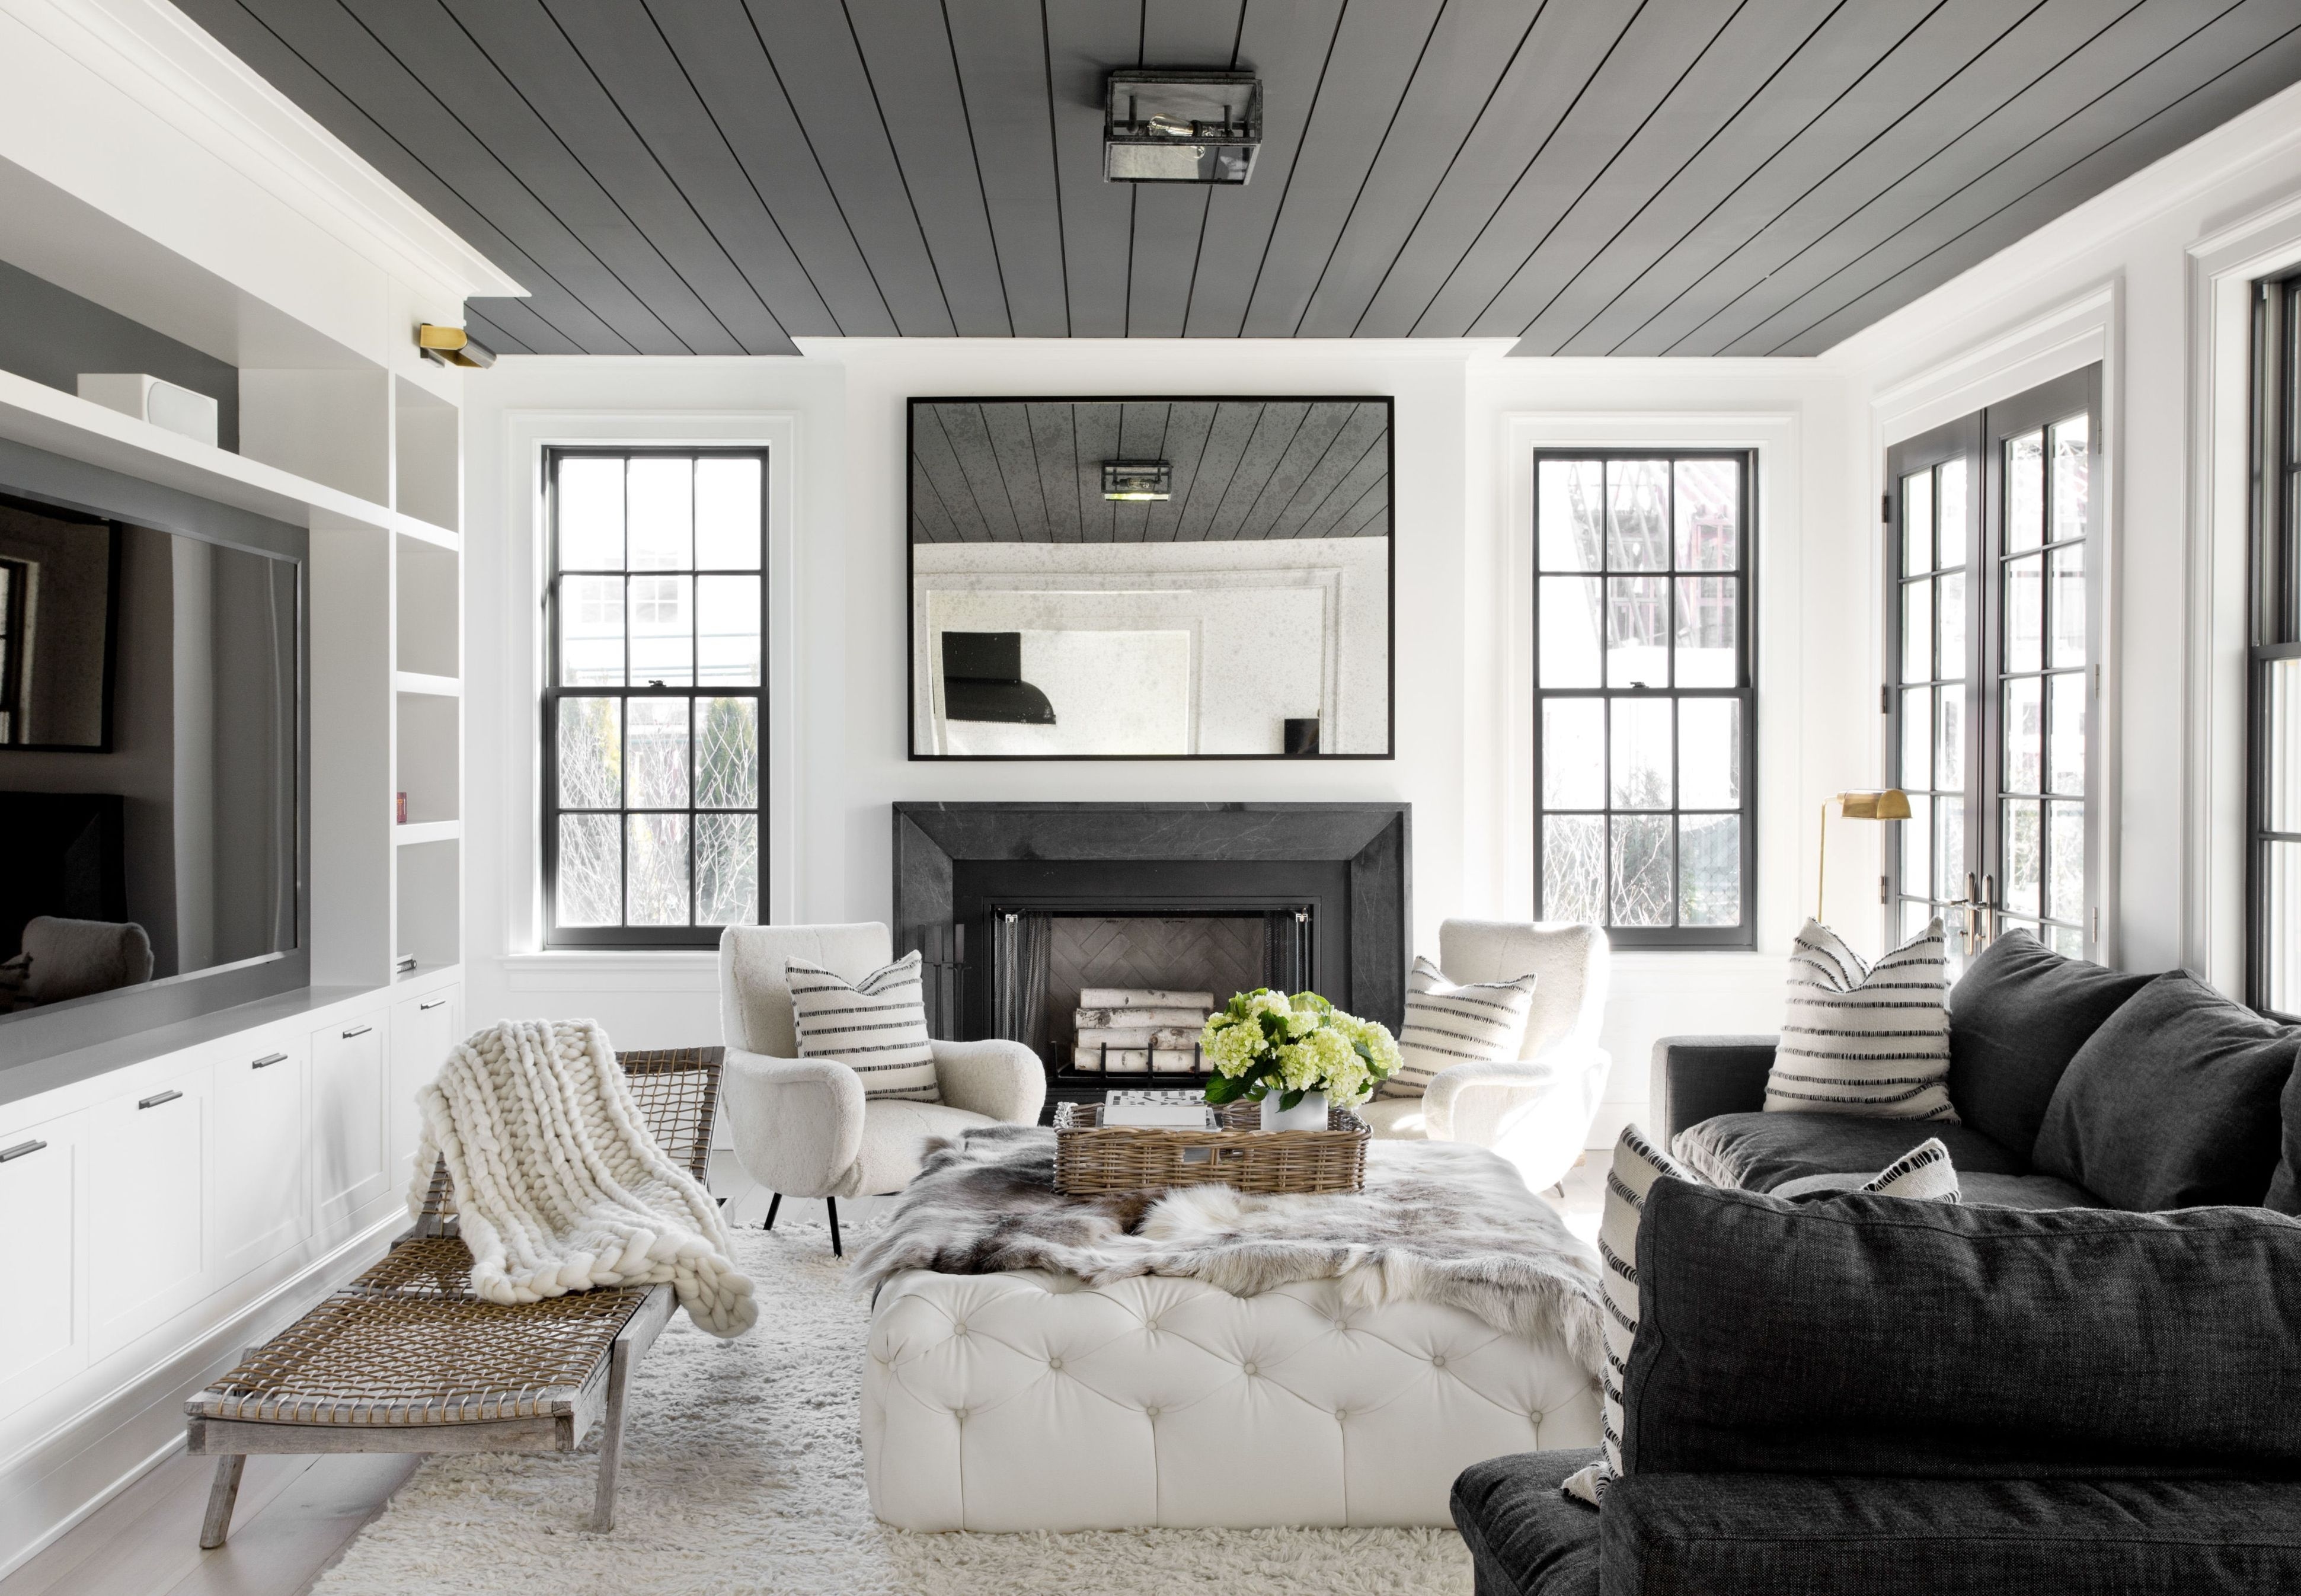 Shiplap Style Planks on the Ceiling: Look We Love